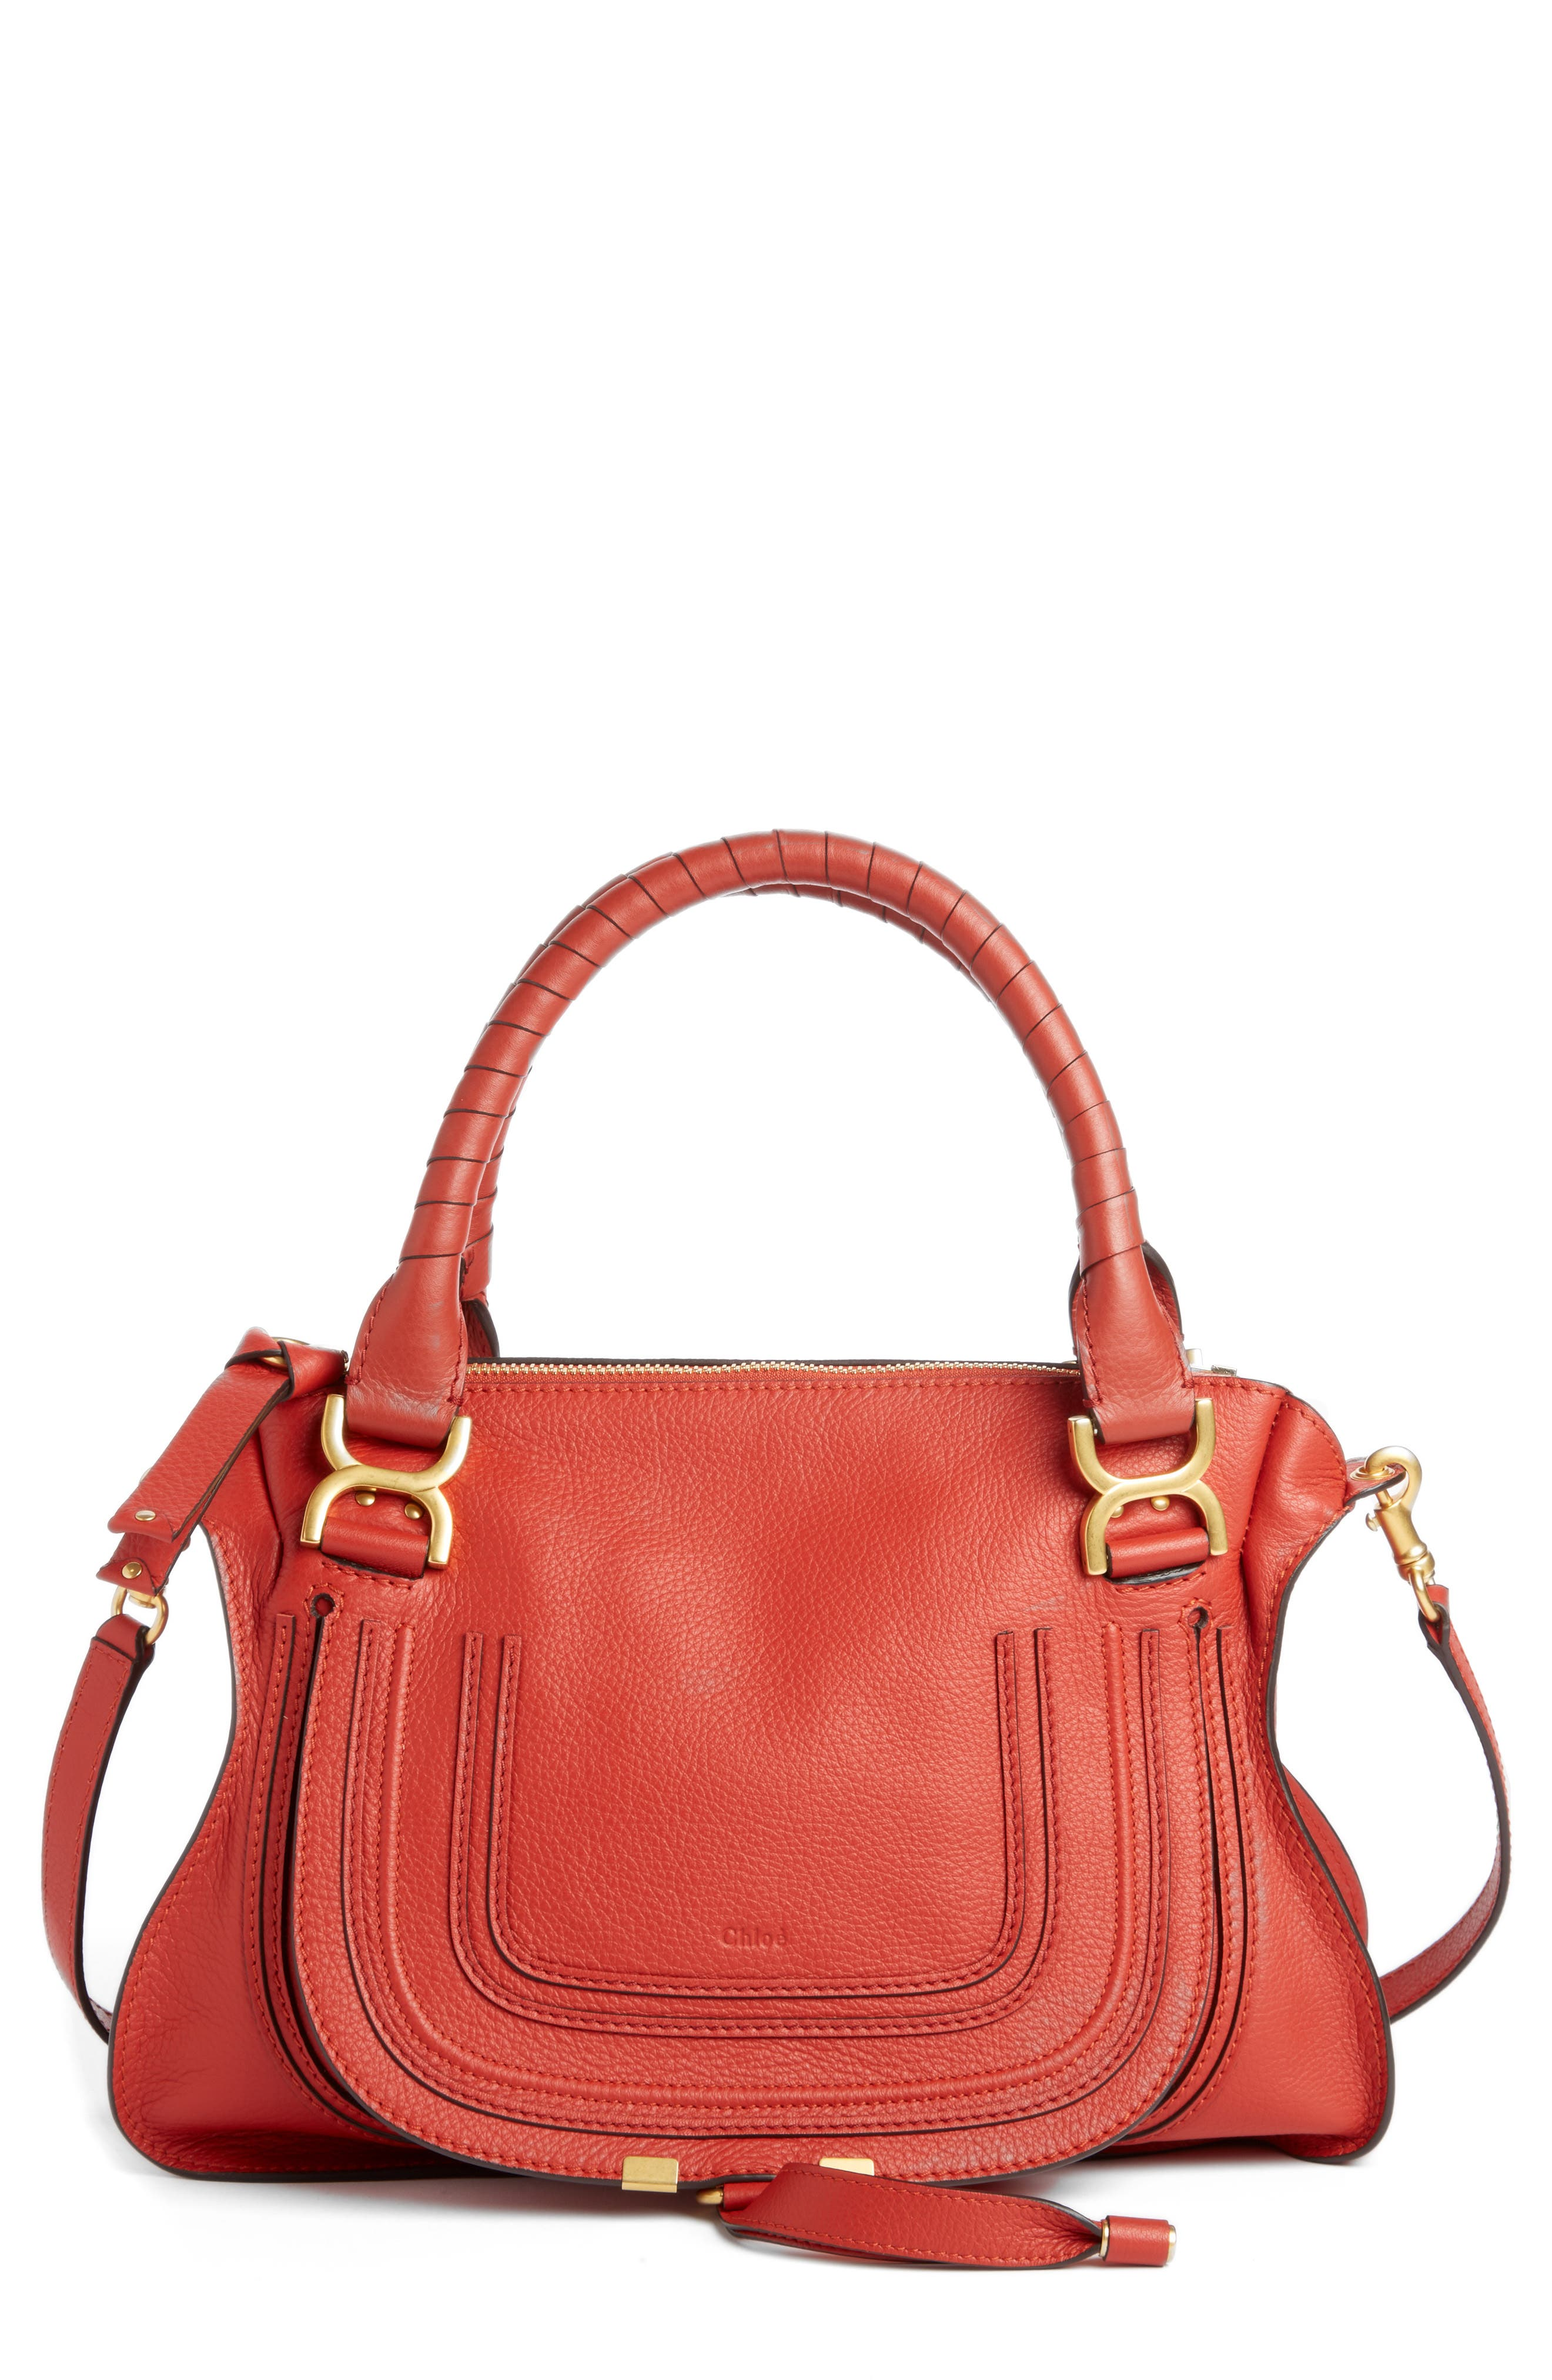 'Medium Marcie' Leather Satchel,                             Main thumbnail 1, color,                             Earthy Red